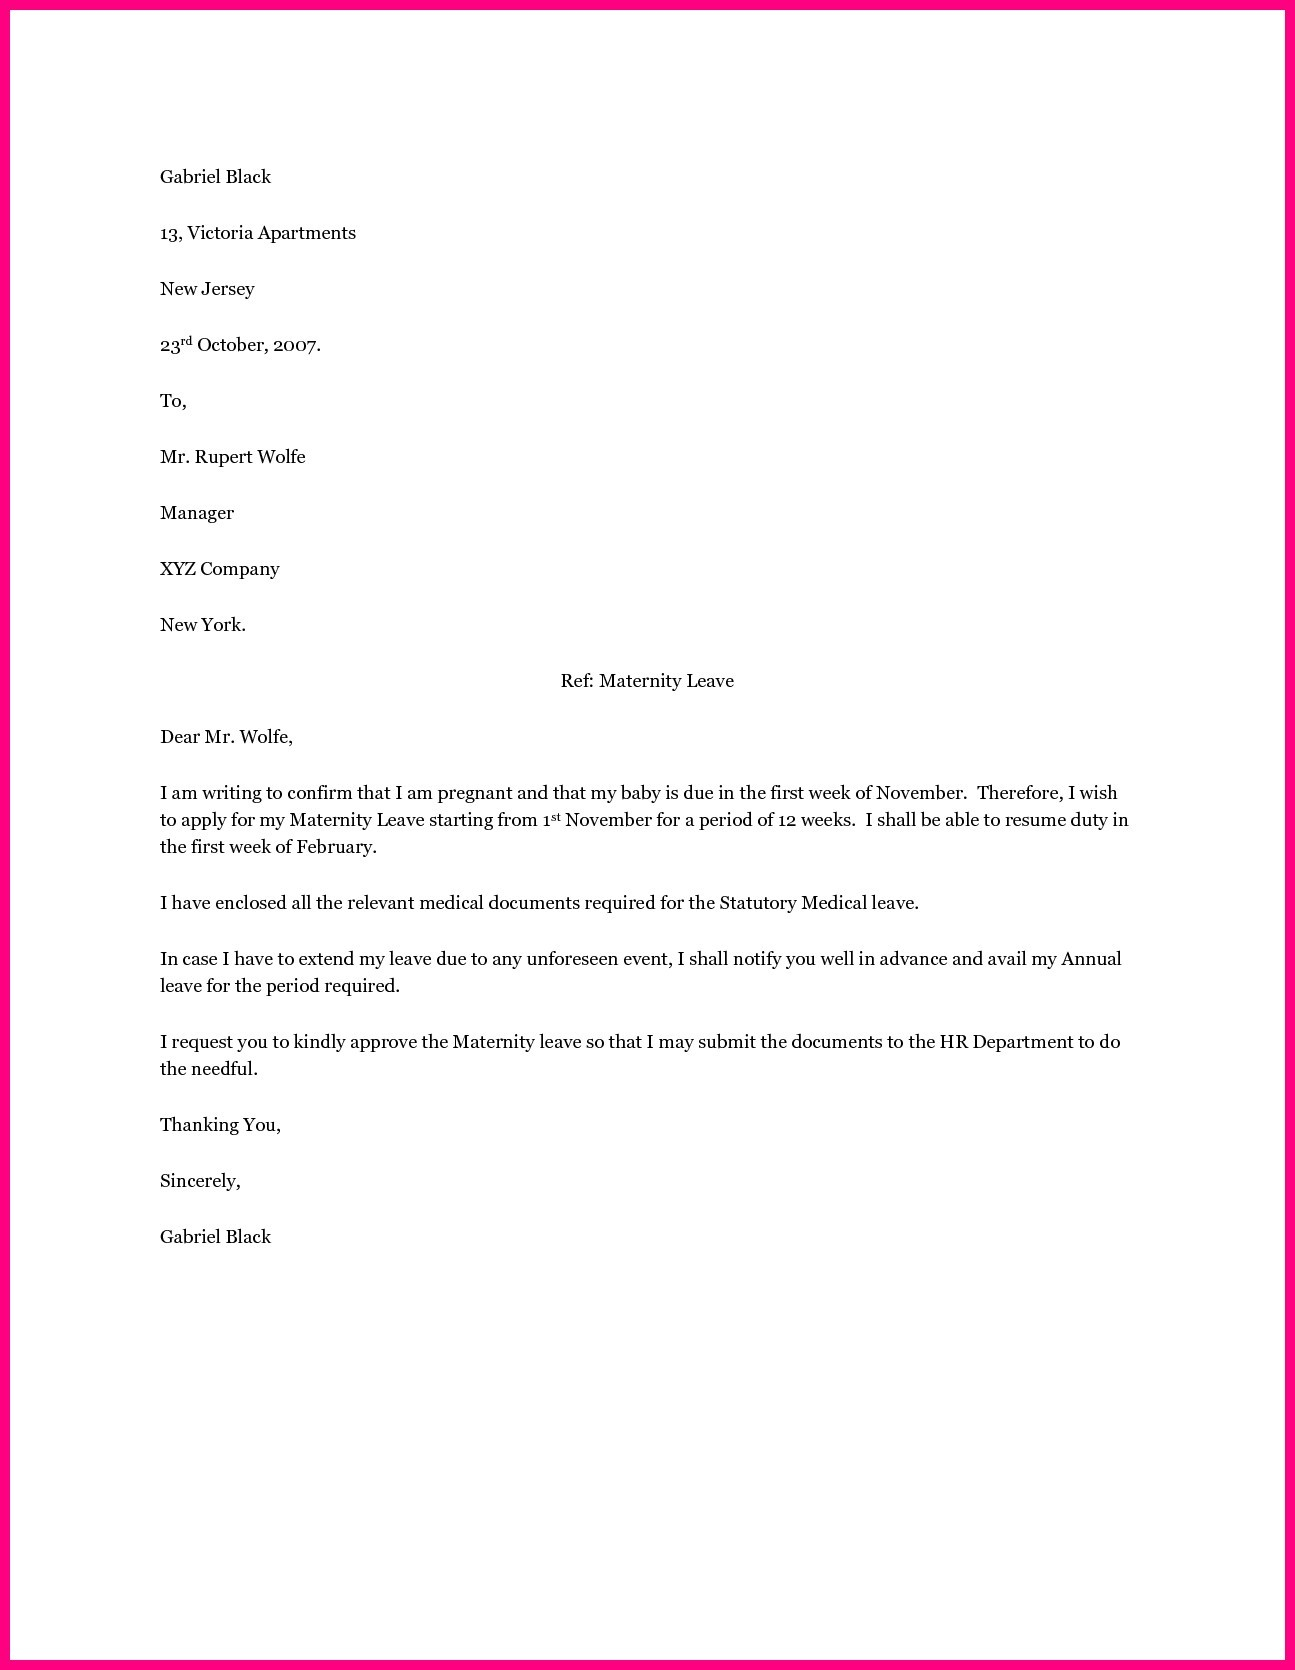 Pregnancy Confirmation Letter Template - Sample Certificate Non Advancement Maternity Benefit Fresh